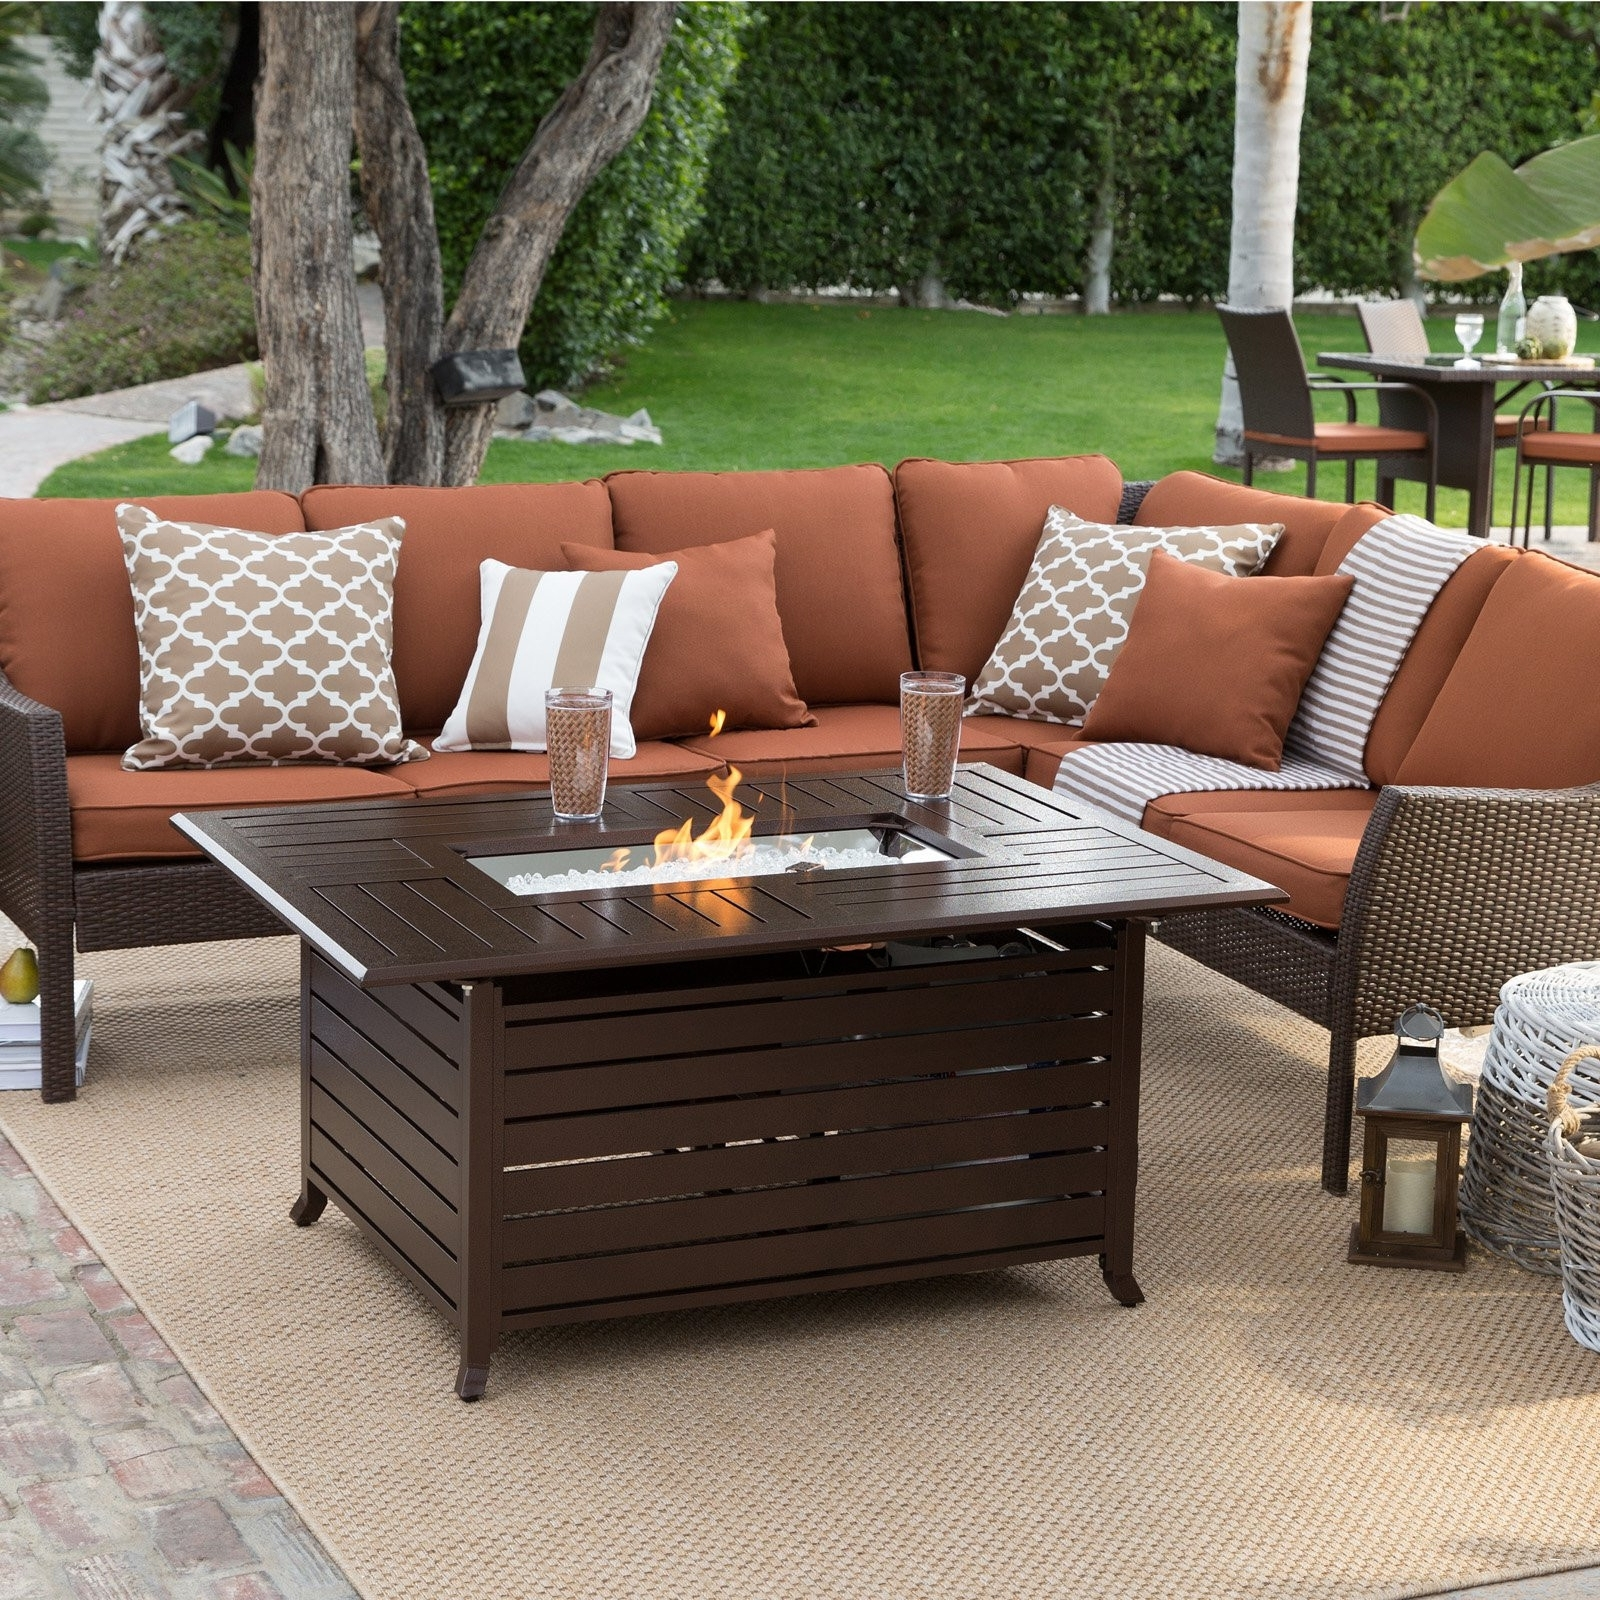 2017 Patio Furniture Conversation Sets With Fire Pit Inside Patio Conversation Sets With Fire Pit Great Wicker Conversation (View 6 of 15)